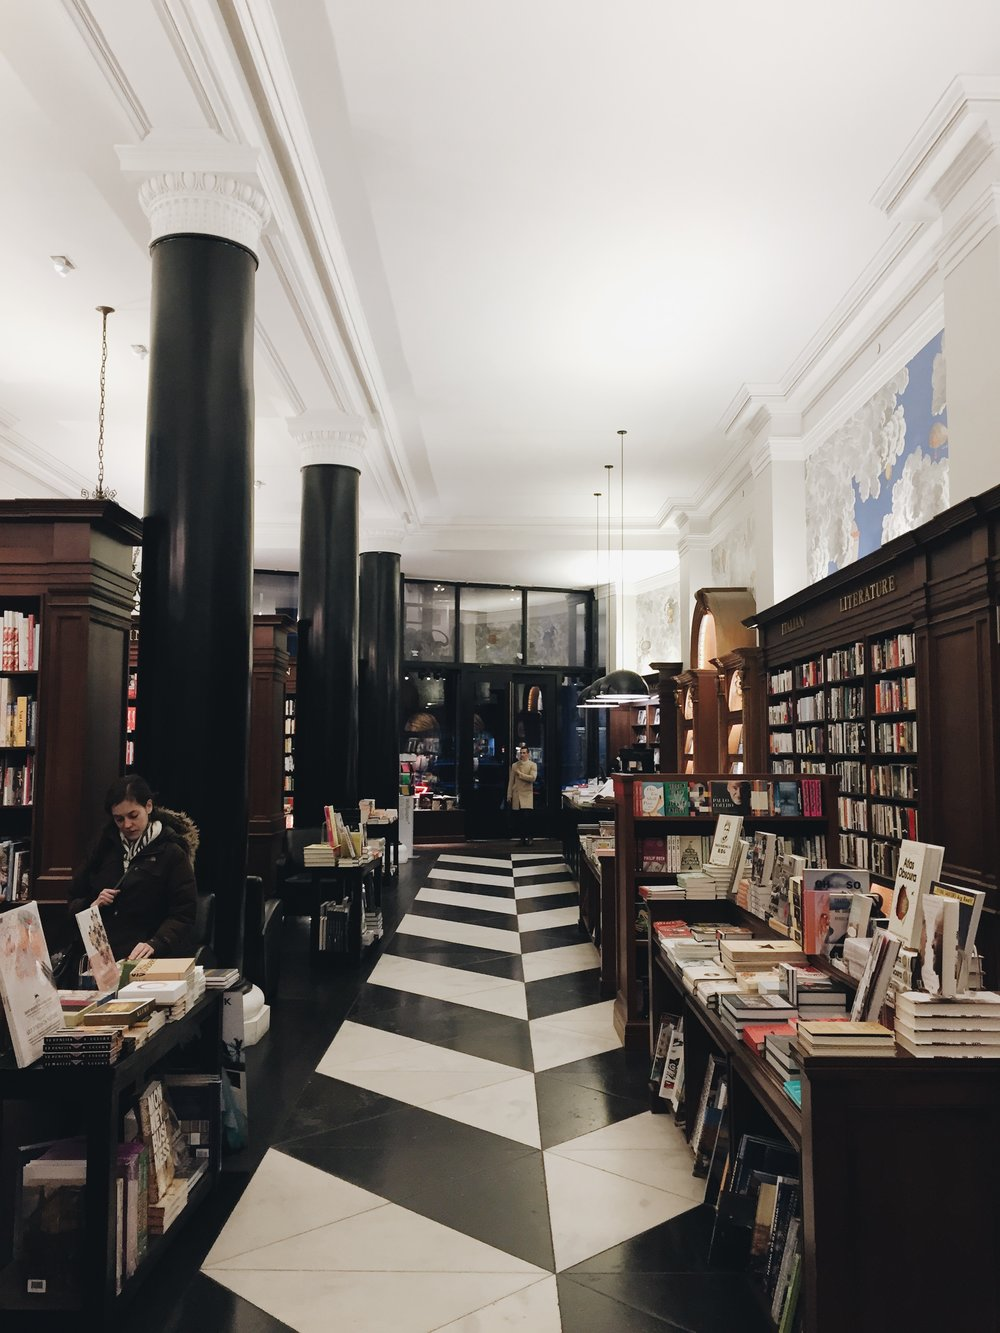 RIZZOLI BOOKSTORE , A.K.A. THE MOST BEAUTIFUL BOOKSELLERS EVER. I WAS LUCKY TO SNATCH A SIGNED COPY OF  OVERVIEW  BY BENJAMIN GRANT AS A LITTLE GIFT TO MYSELF. (MORE TO COME ON THAT LATER)